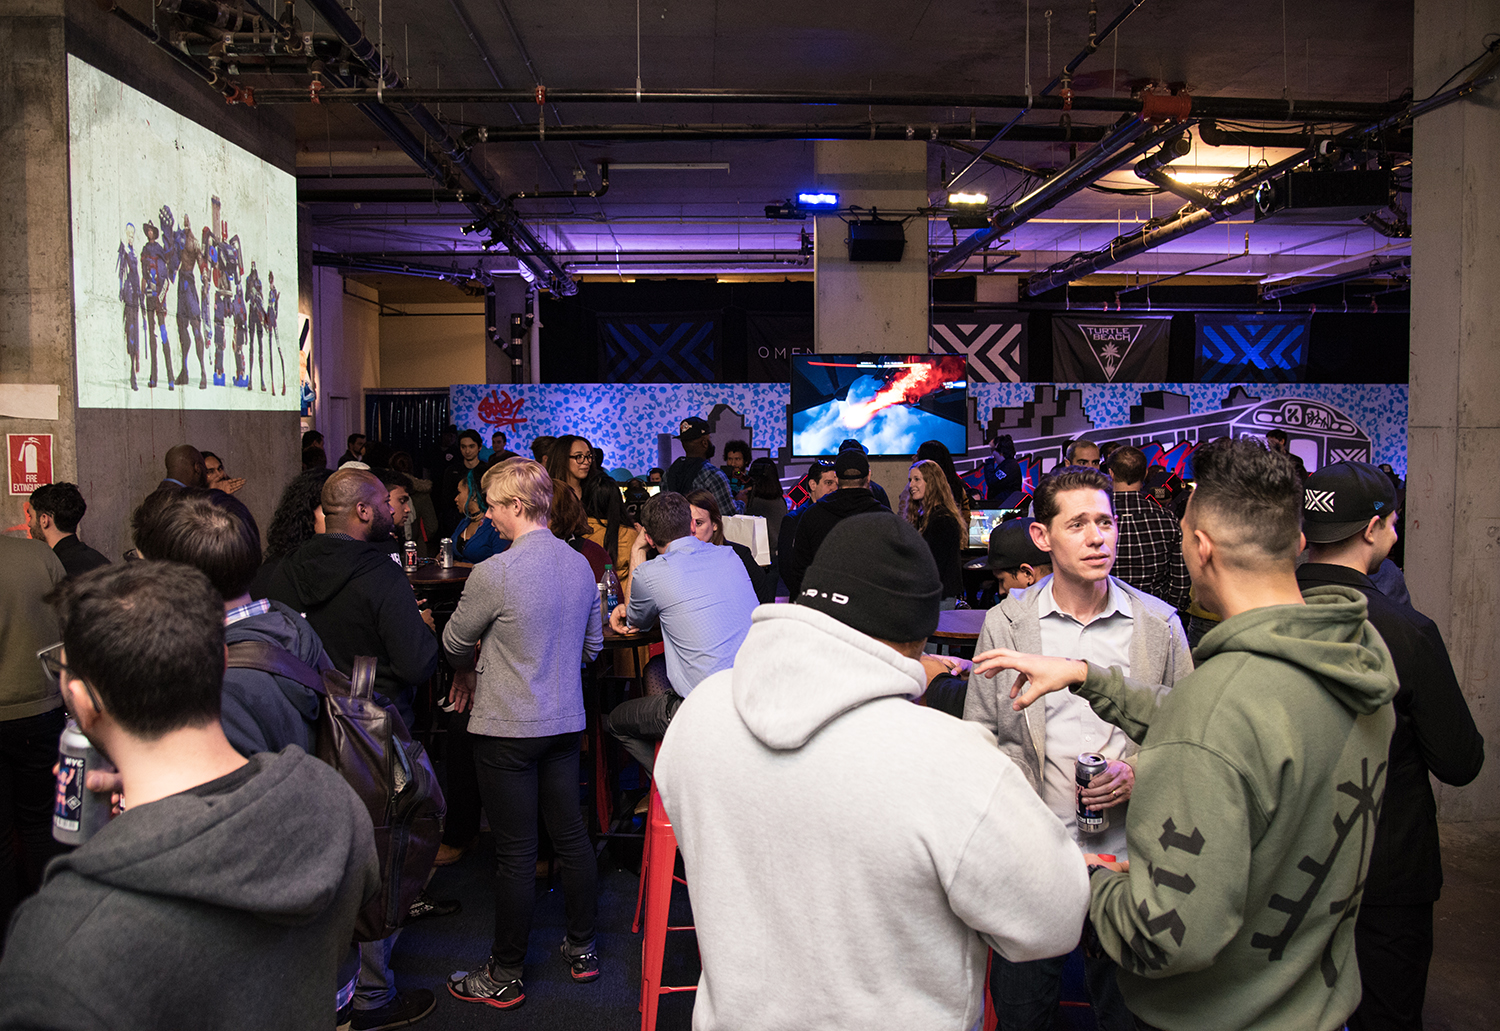 Overwatch League Team NY Excelsior Creates a Pop-up Shop for the Gaming Community